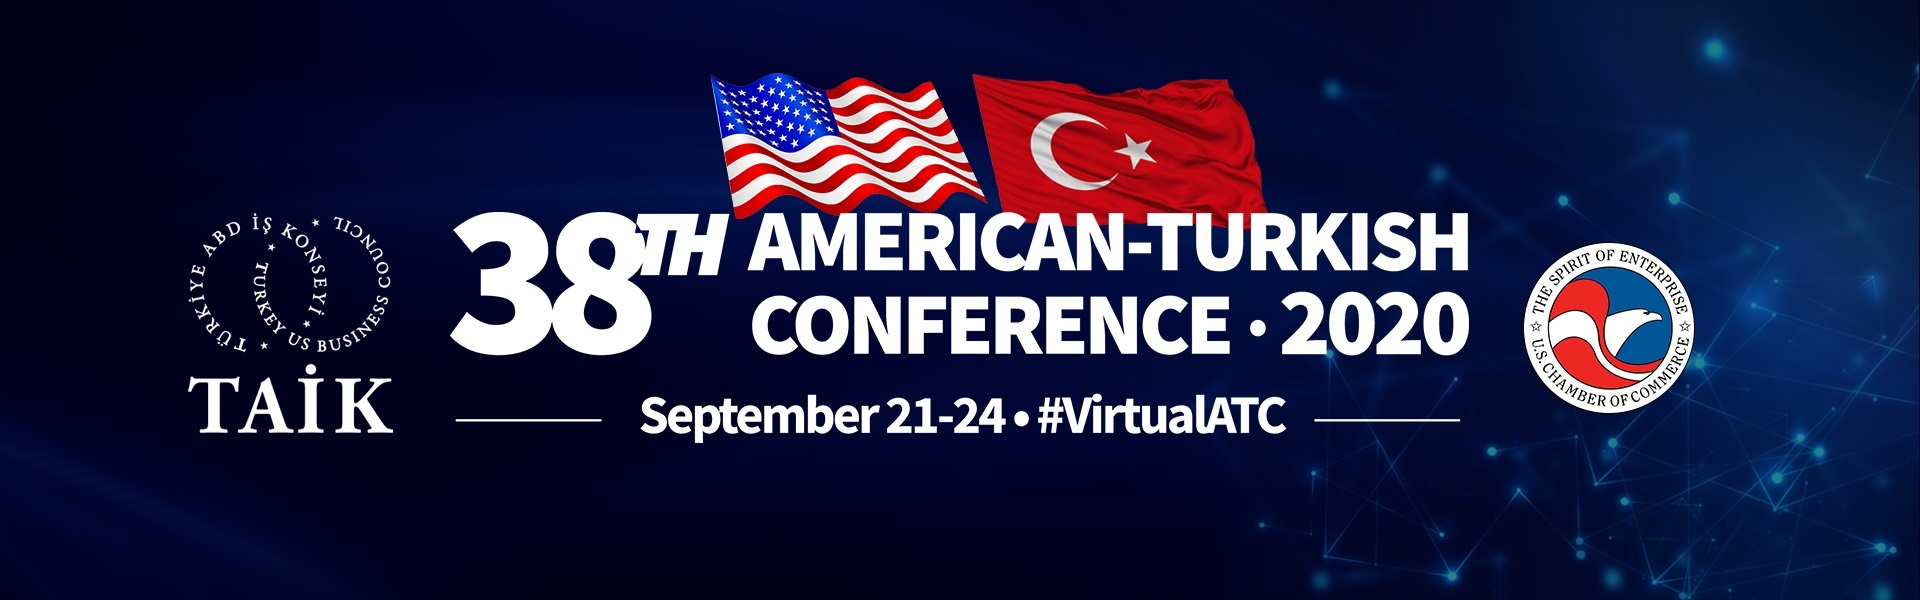 American-Turkish Conference